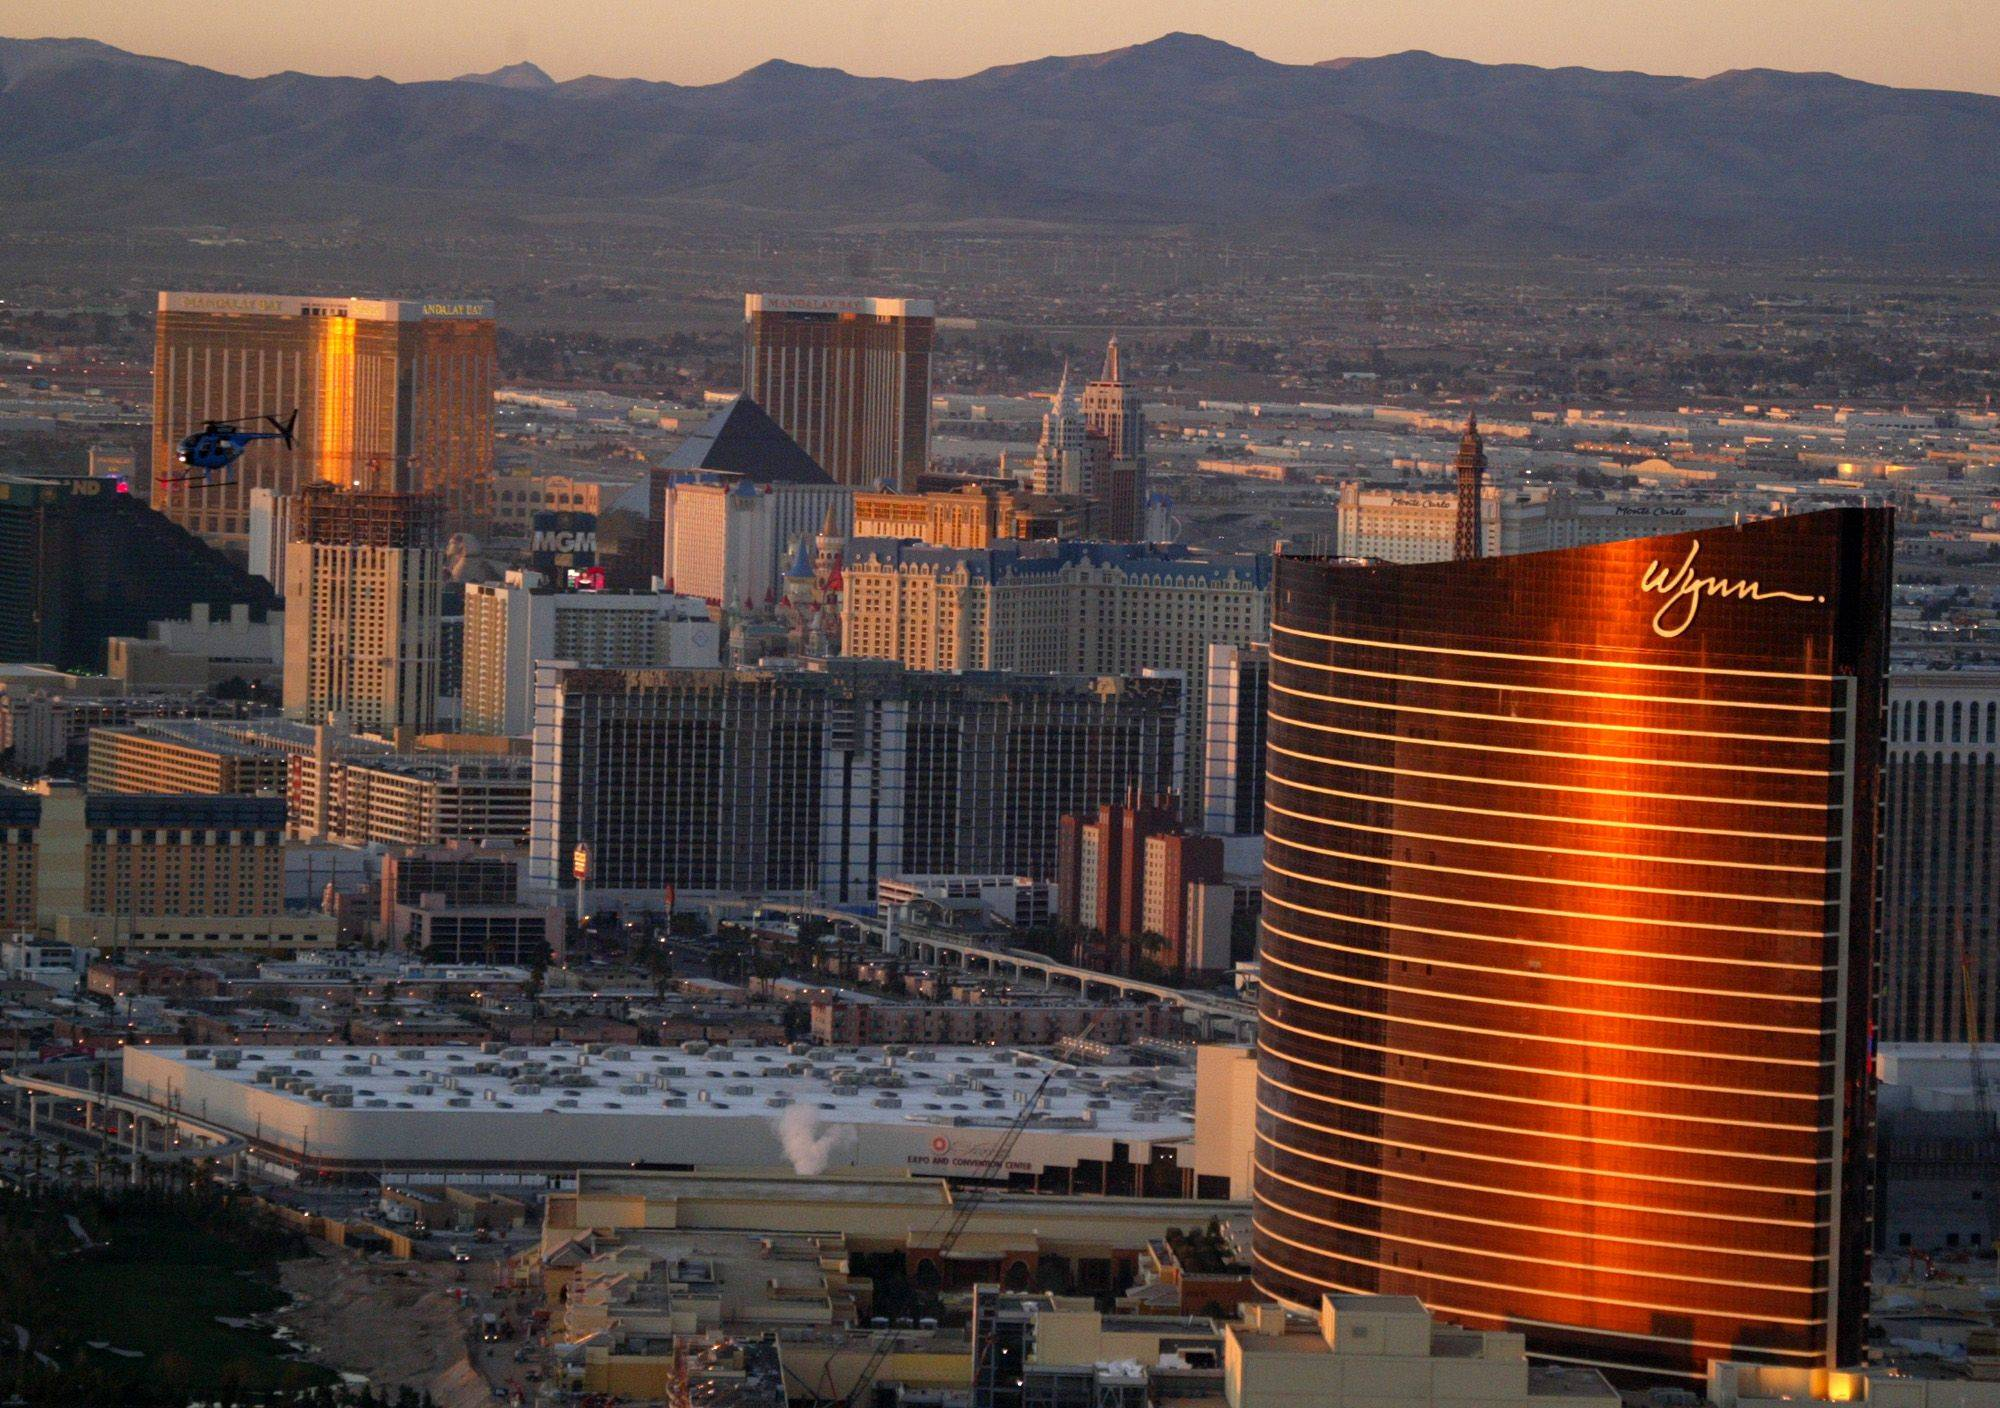 The new Wynn Resort on the north end of the Las Vegas Strip.